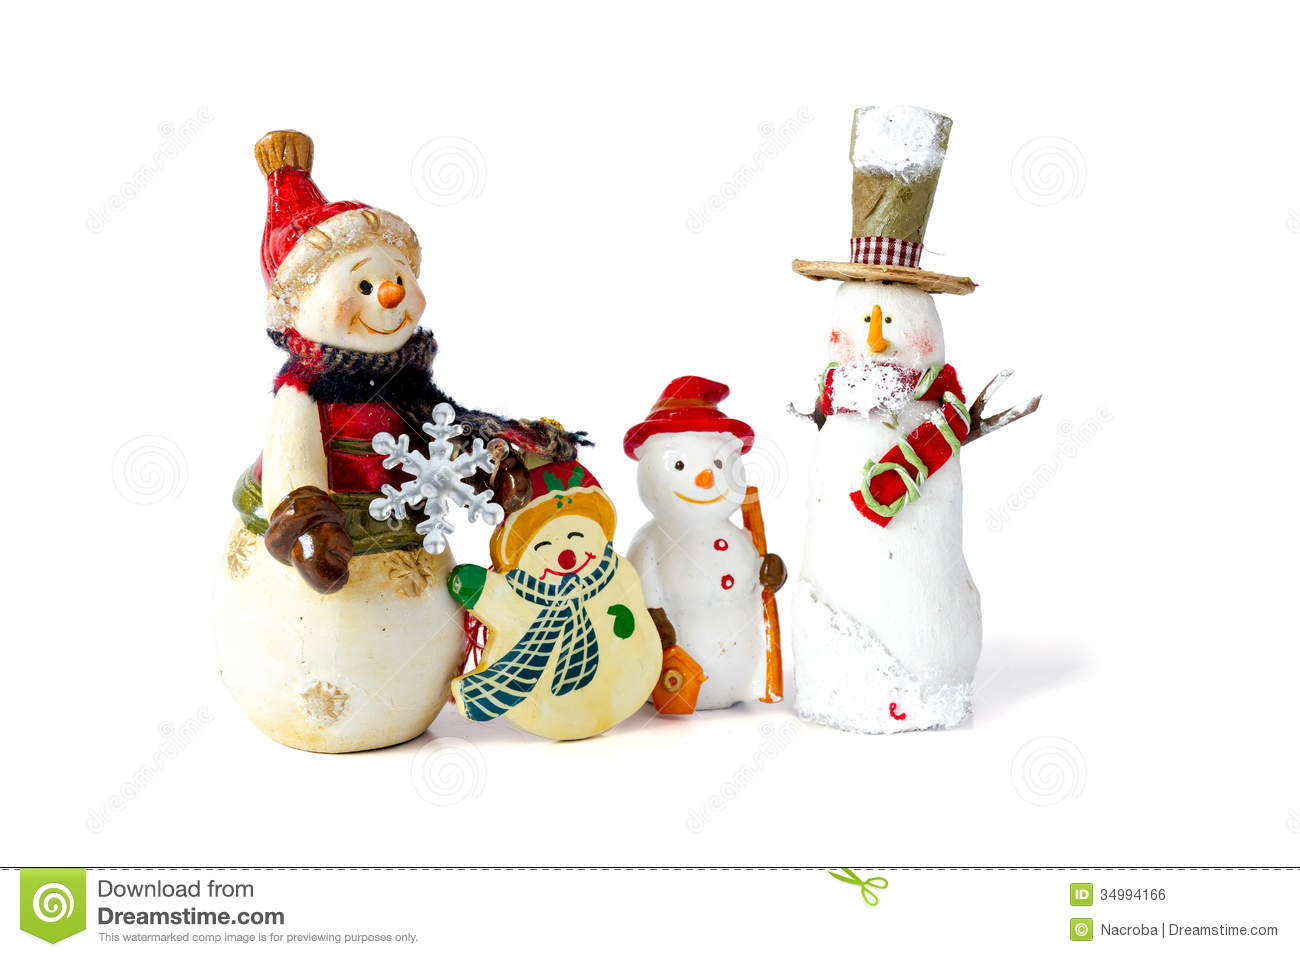 snowman family wallpaper - photo #23